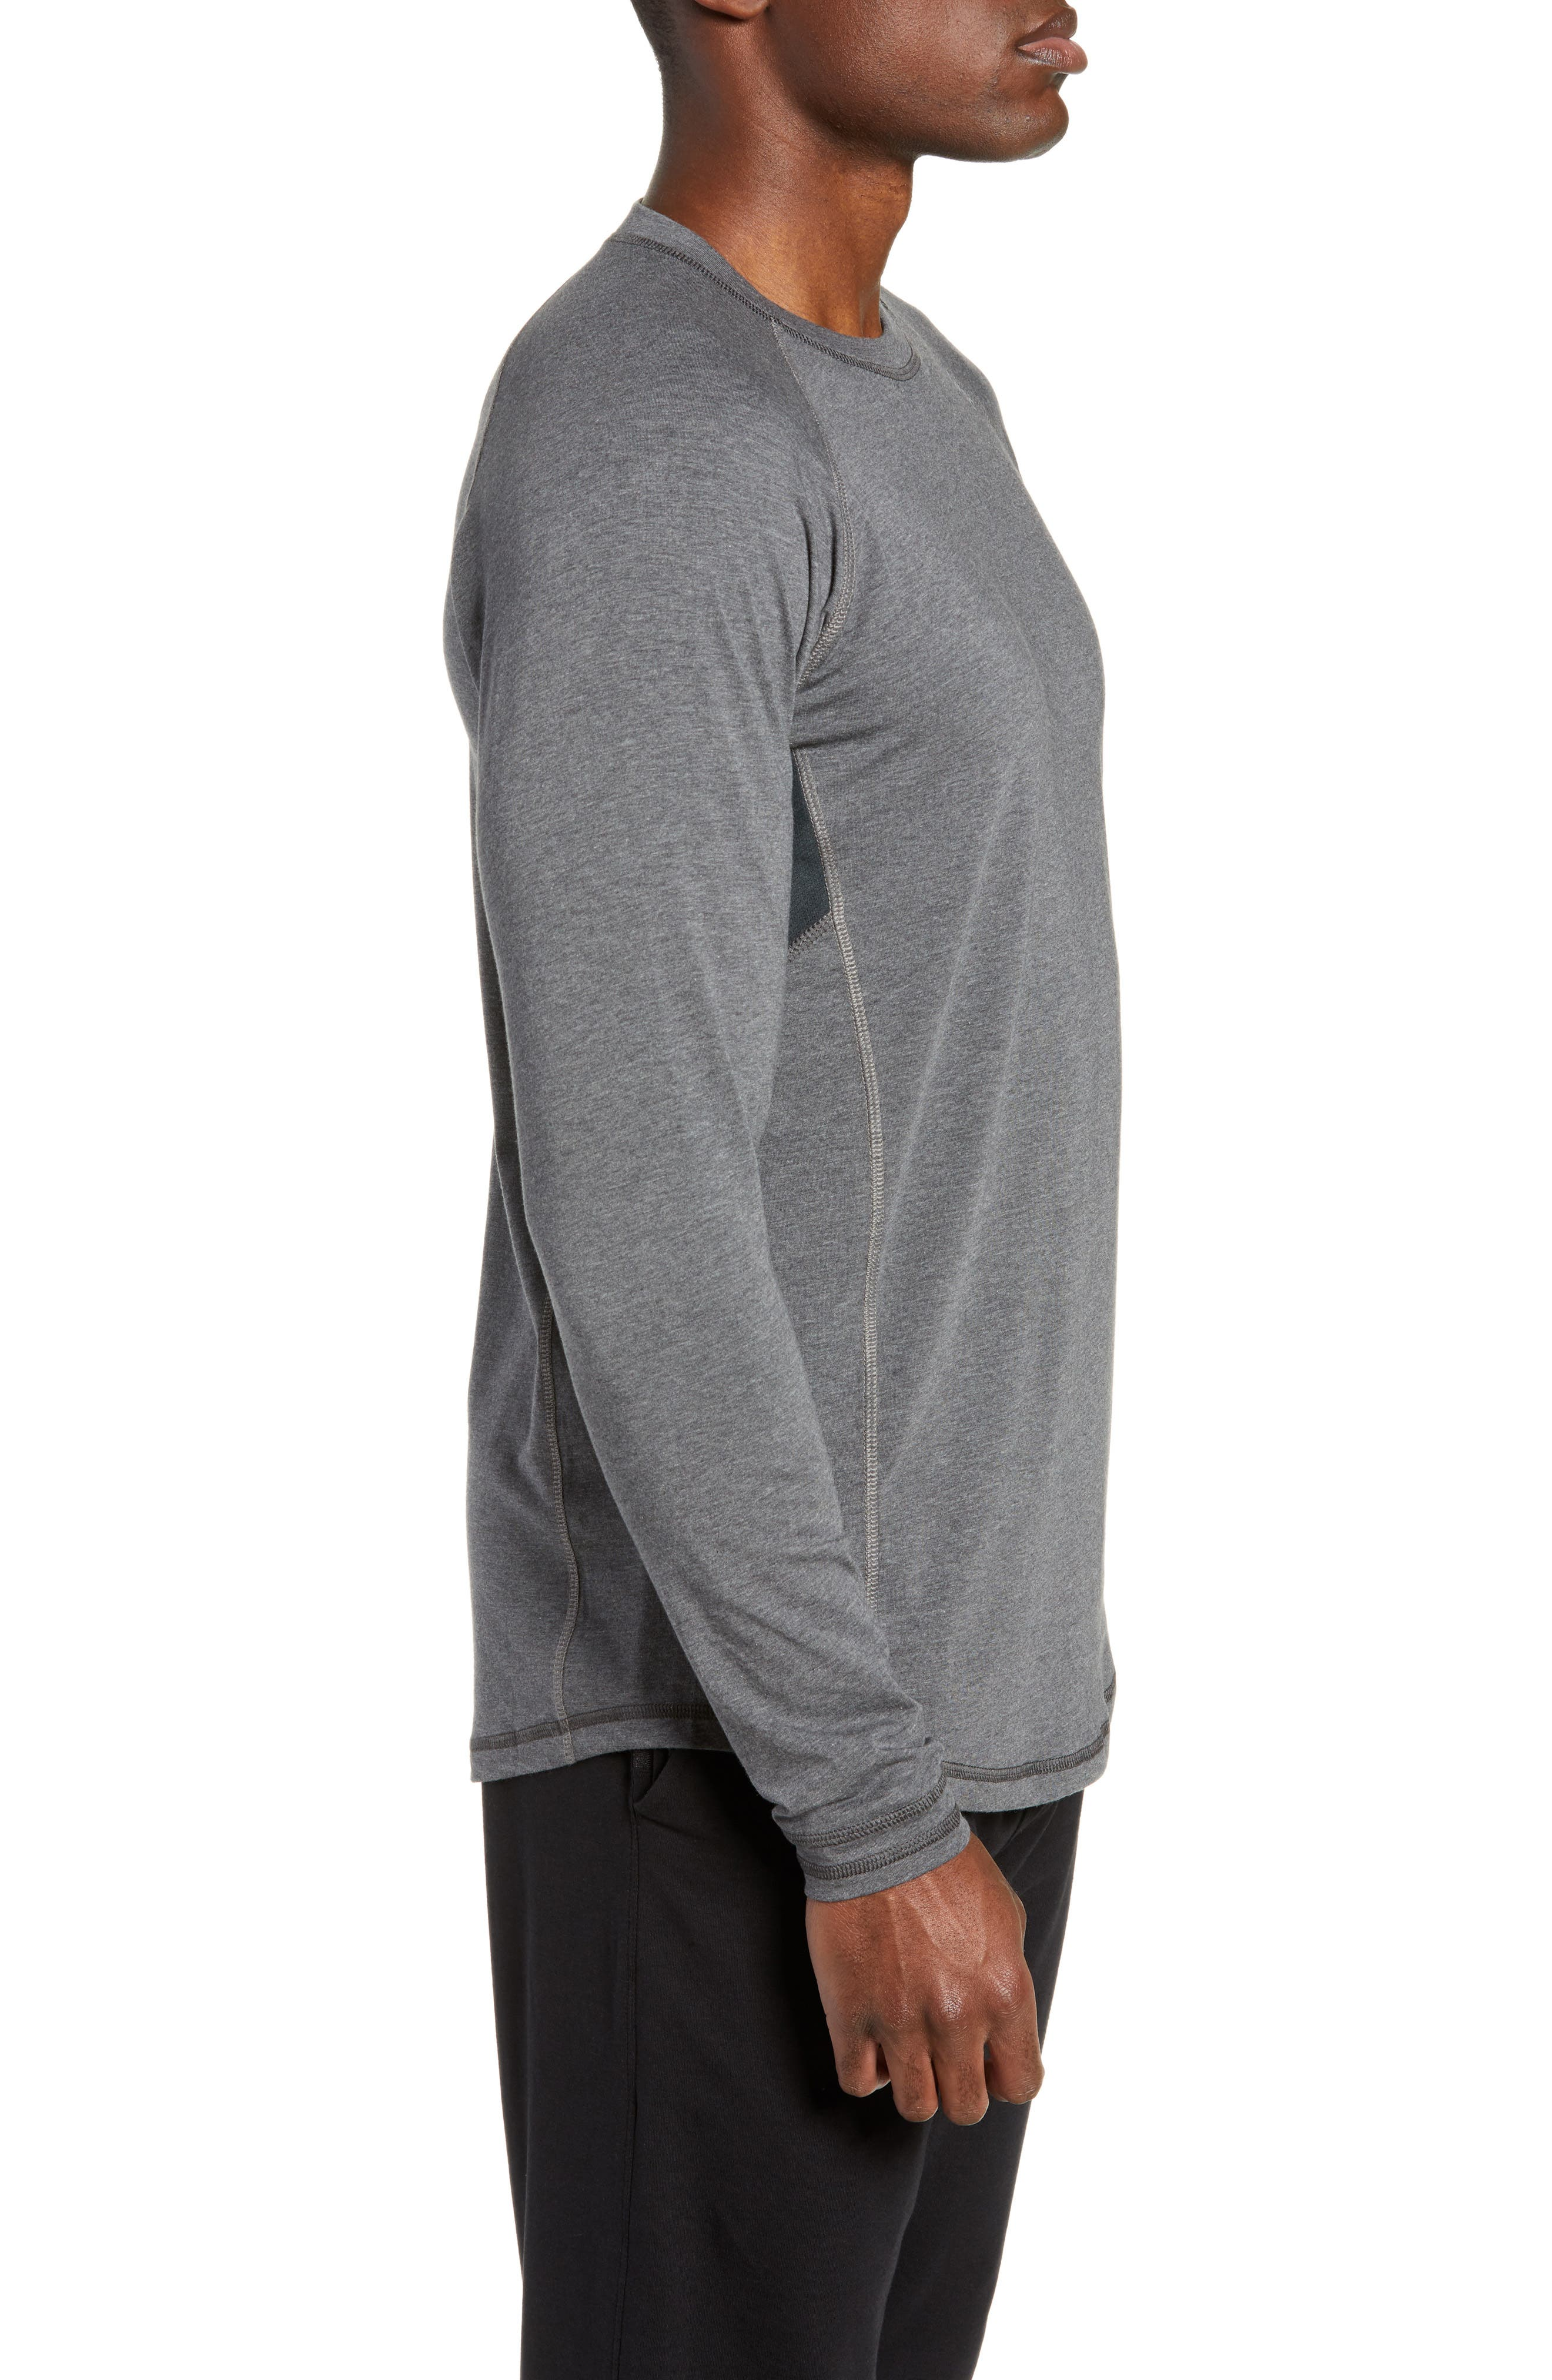 TASC PERFORMANCE, Charge II Long Sleeve Shirt, Alternate thumbnail 3, color, BLACK HEATHER